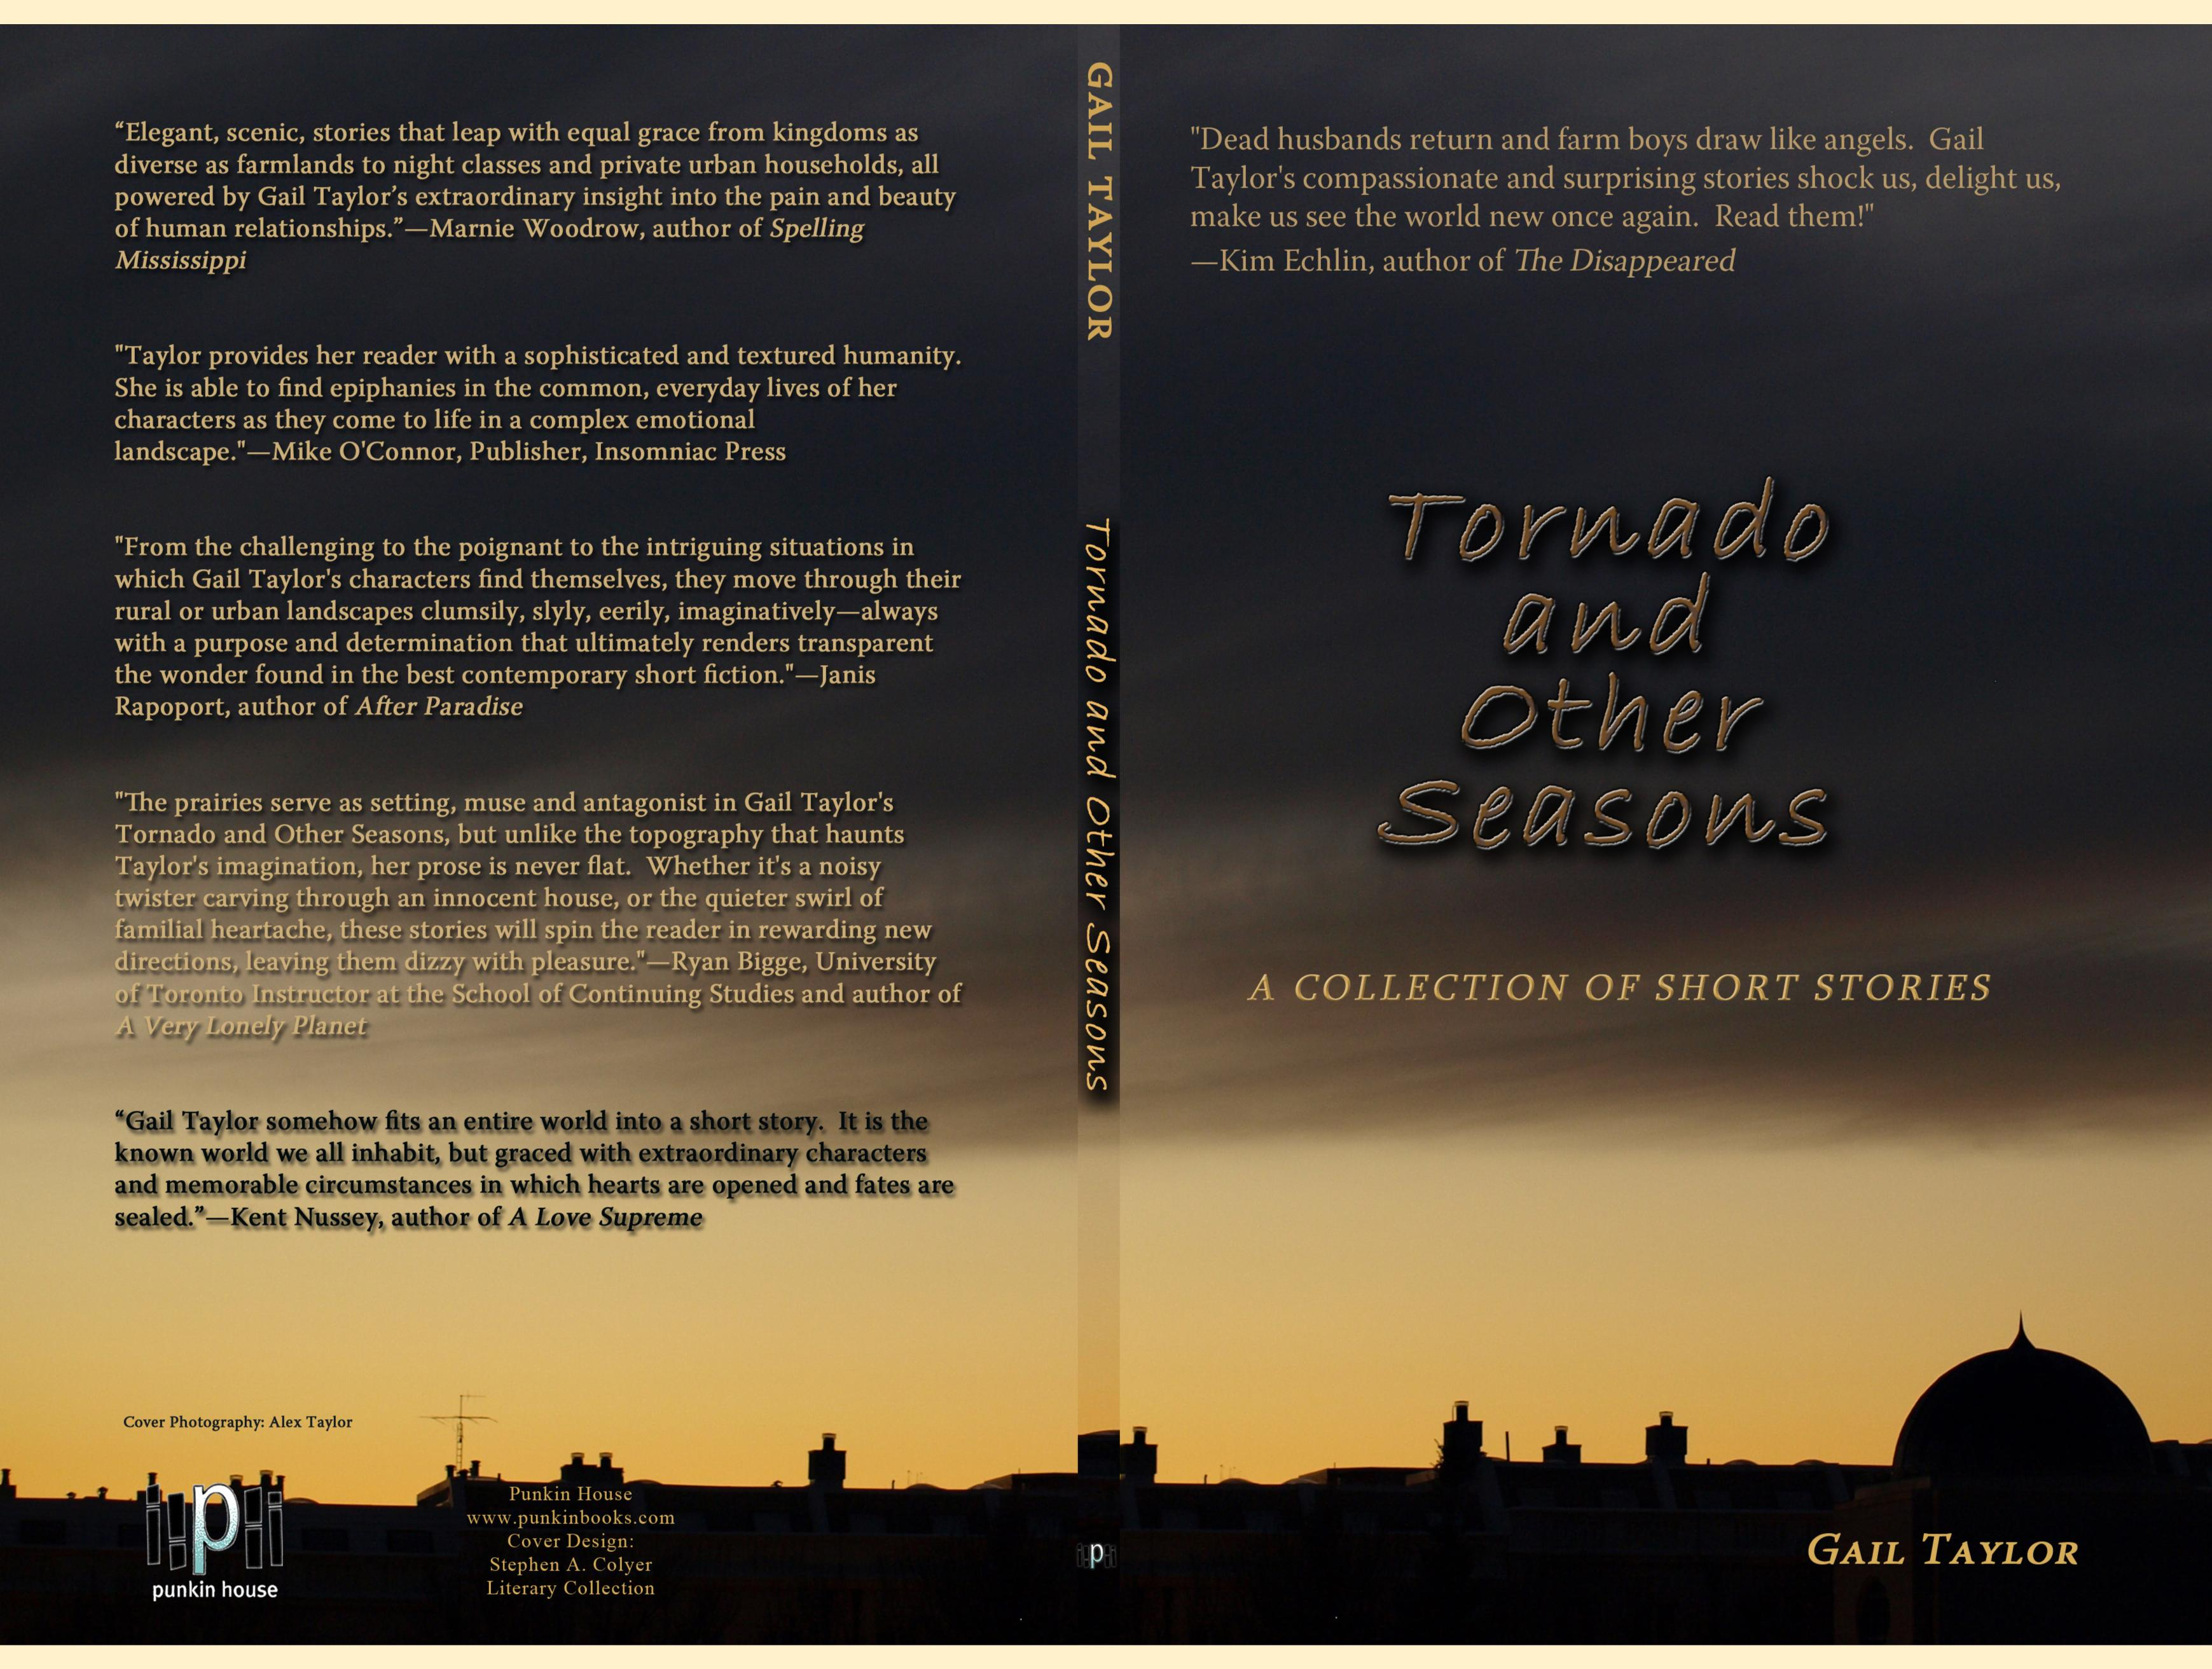 Tornado and Other Seasons: A Collection of Short Stories cover image